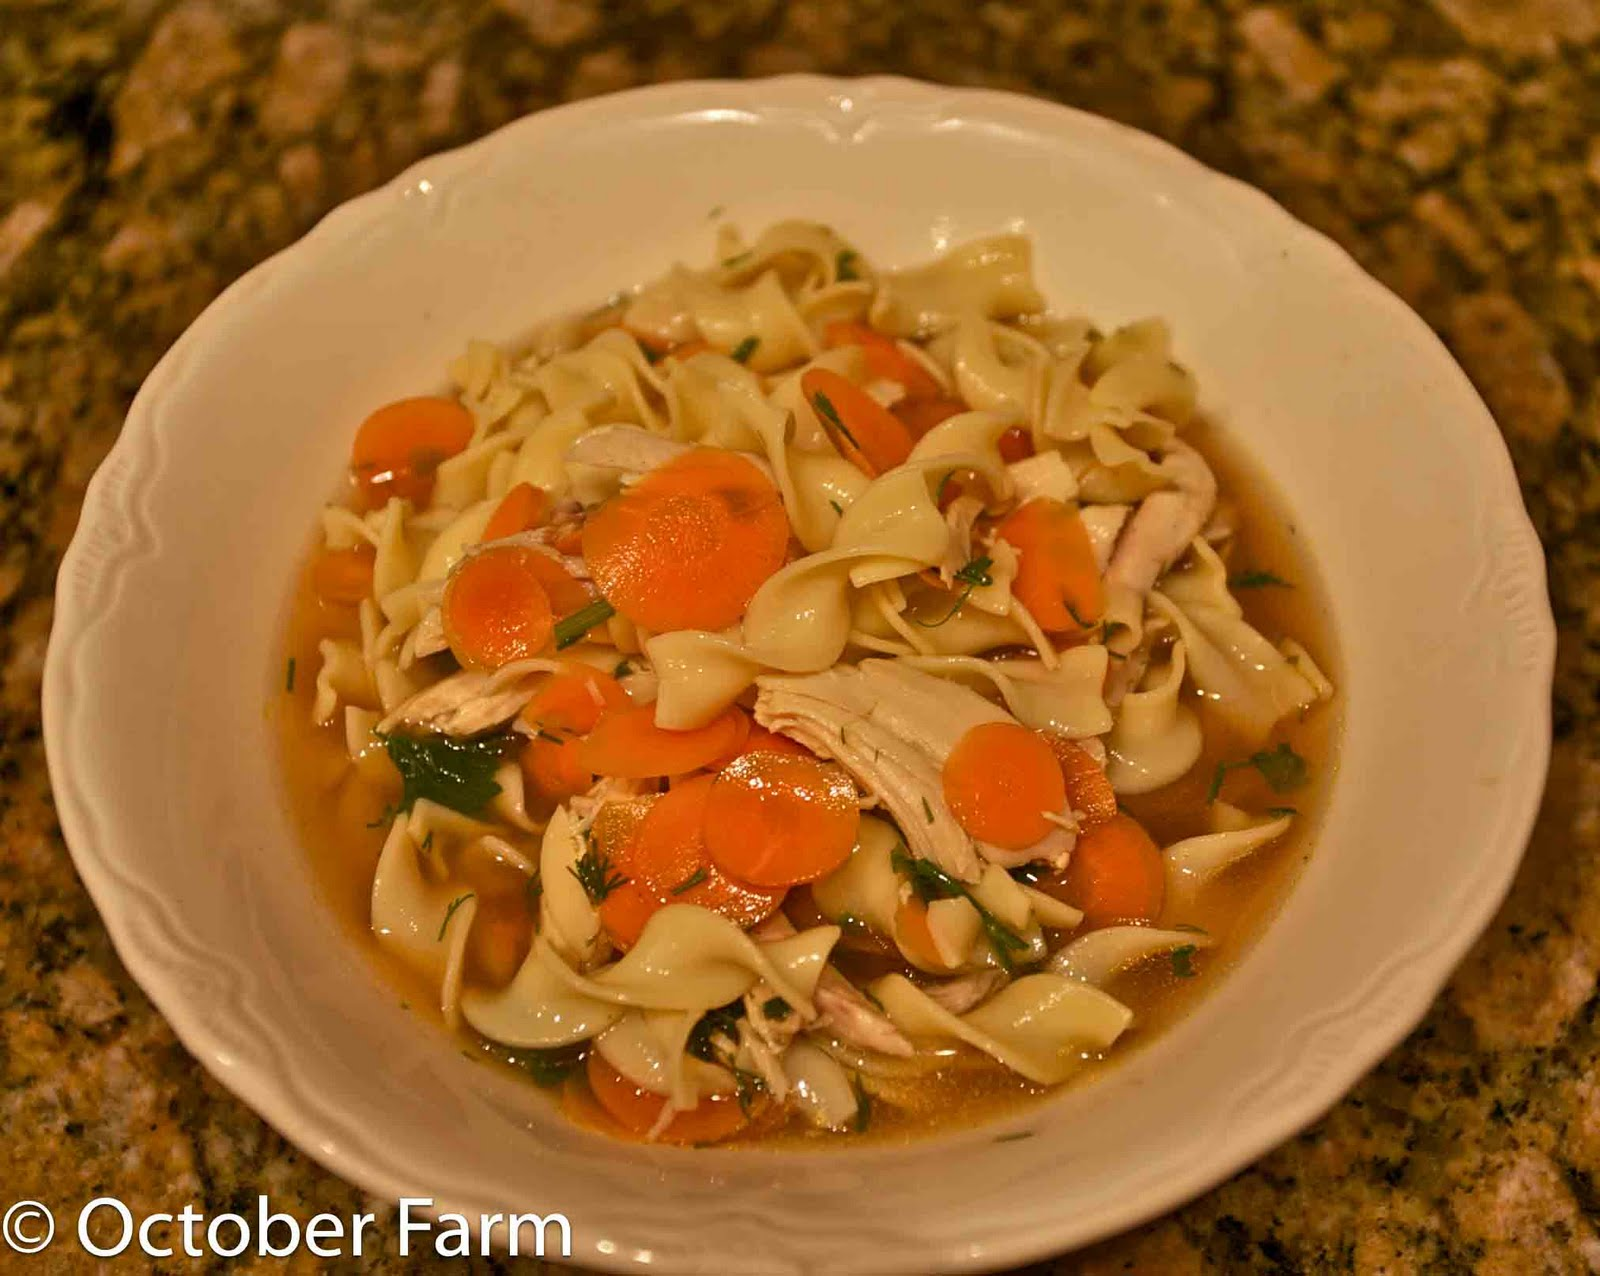 Octoberfarm: The Best Chicken Noodle Soup You Will Ever Eat